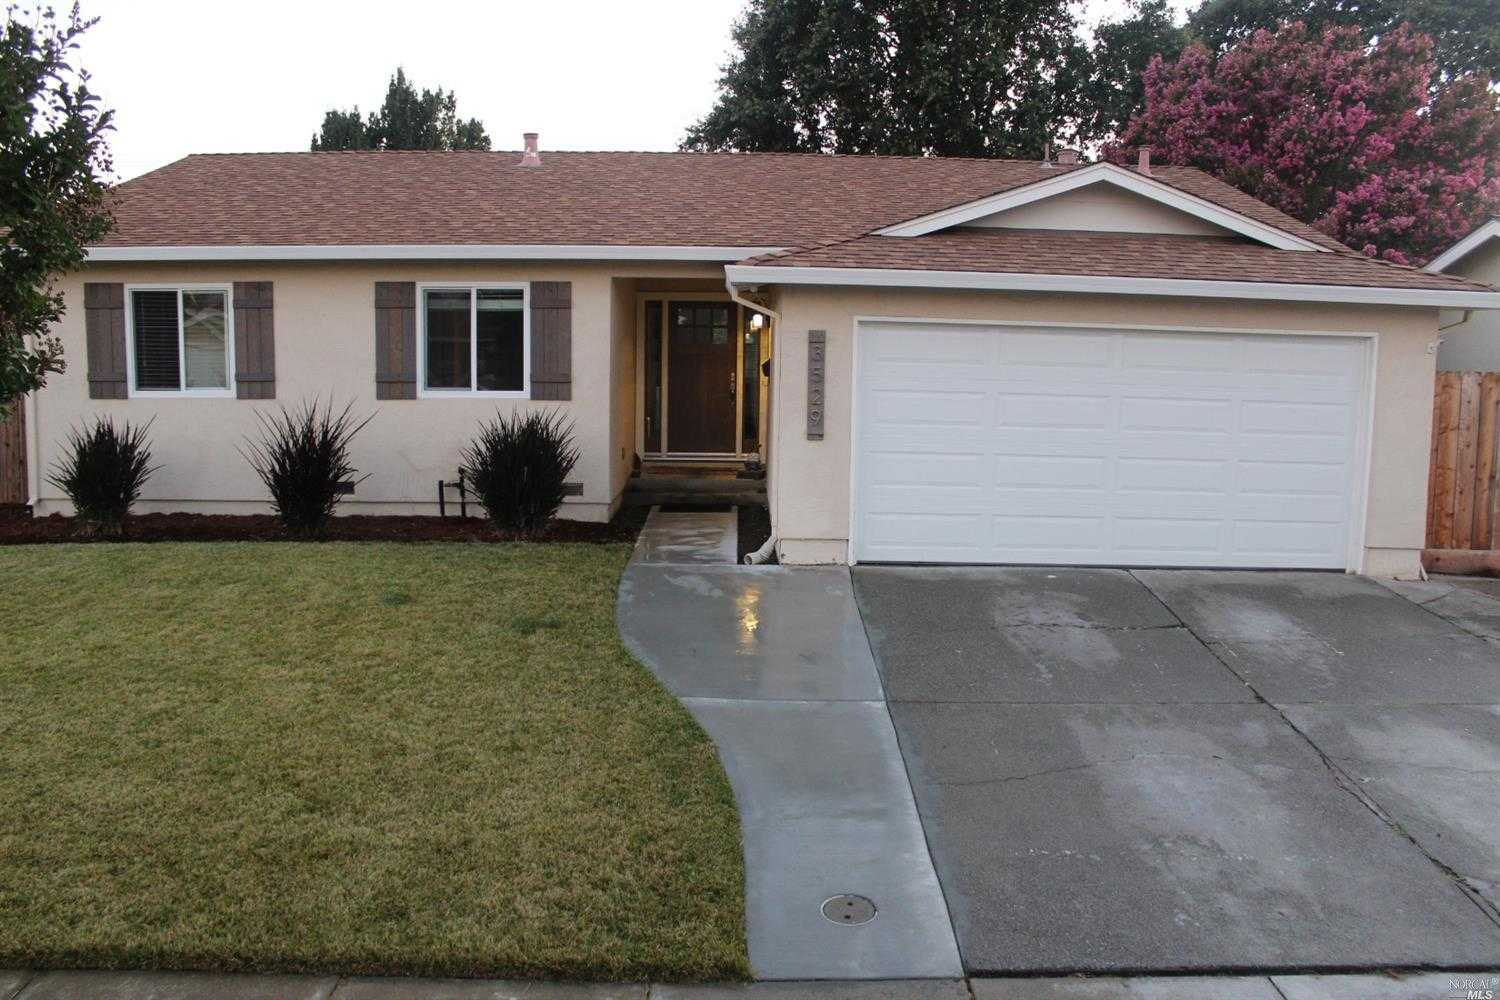 $659,000 - 4Br/2Ba -  for Sale in East Bel-aire Park, Napa